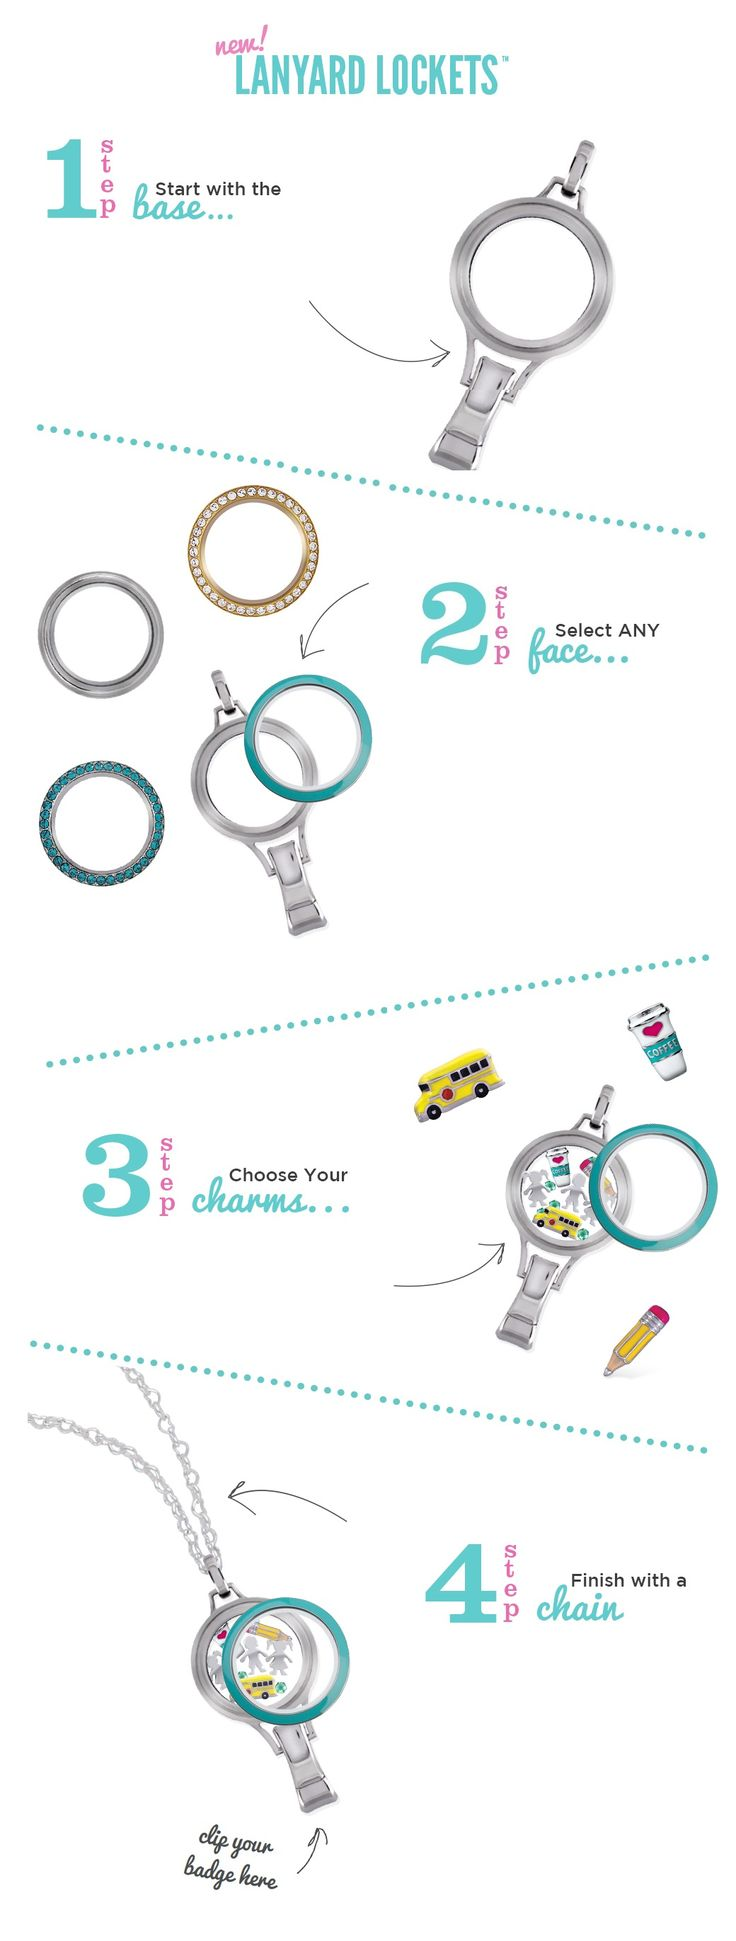 Origami Owl Living Lanyard shop online at www.hellociindycharms.origamiowl.com Follow CINDY CAZARES on FB! https://www.facebook.com/hellociindycharms